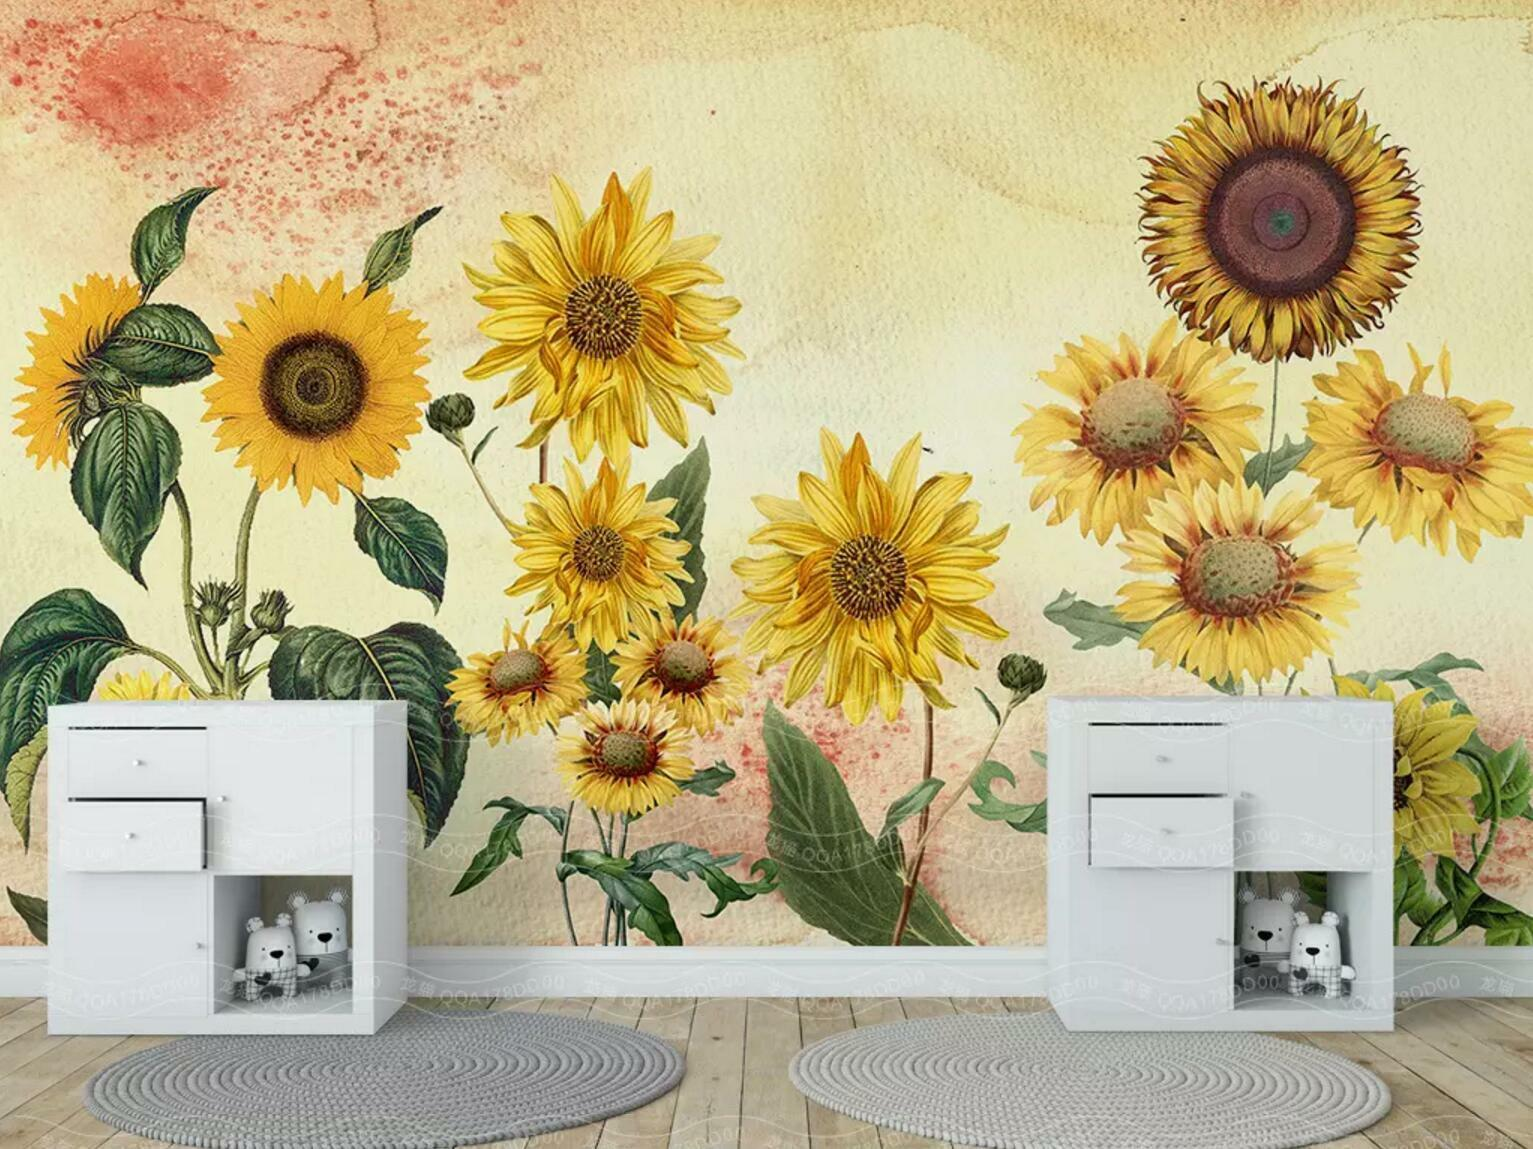 3D Sunflower 9636 Wall Paper Exclusive MXY Wallpaper Mural Decal Indoor Wall AJ